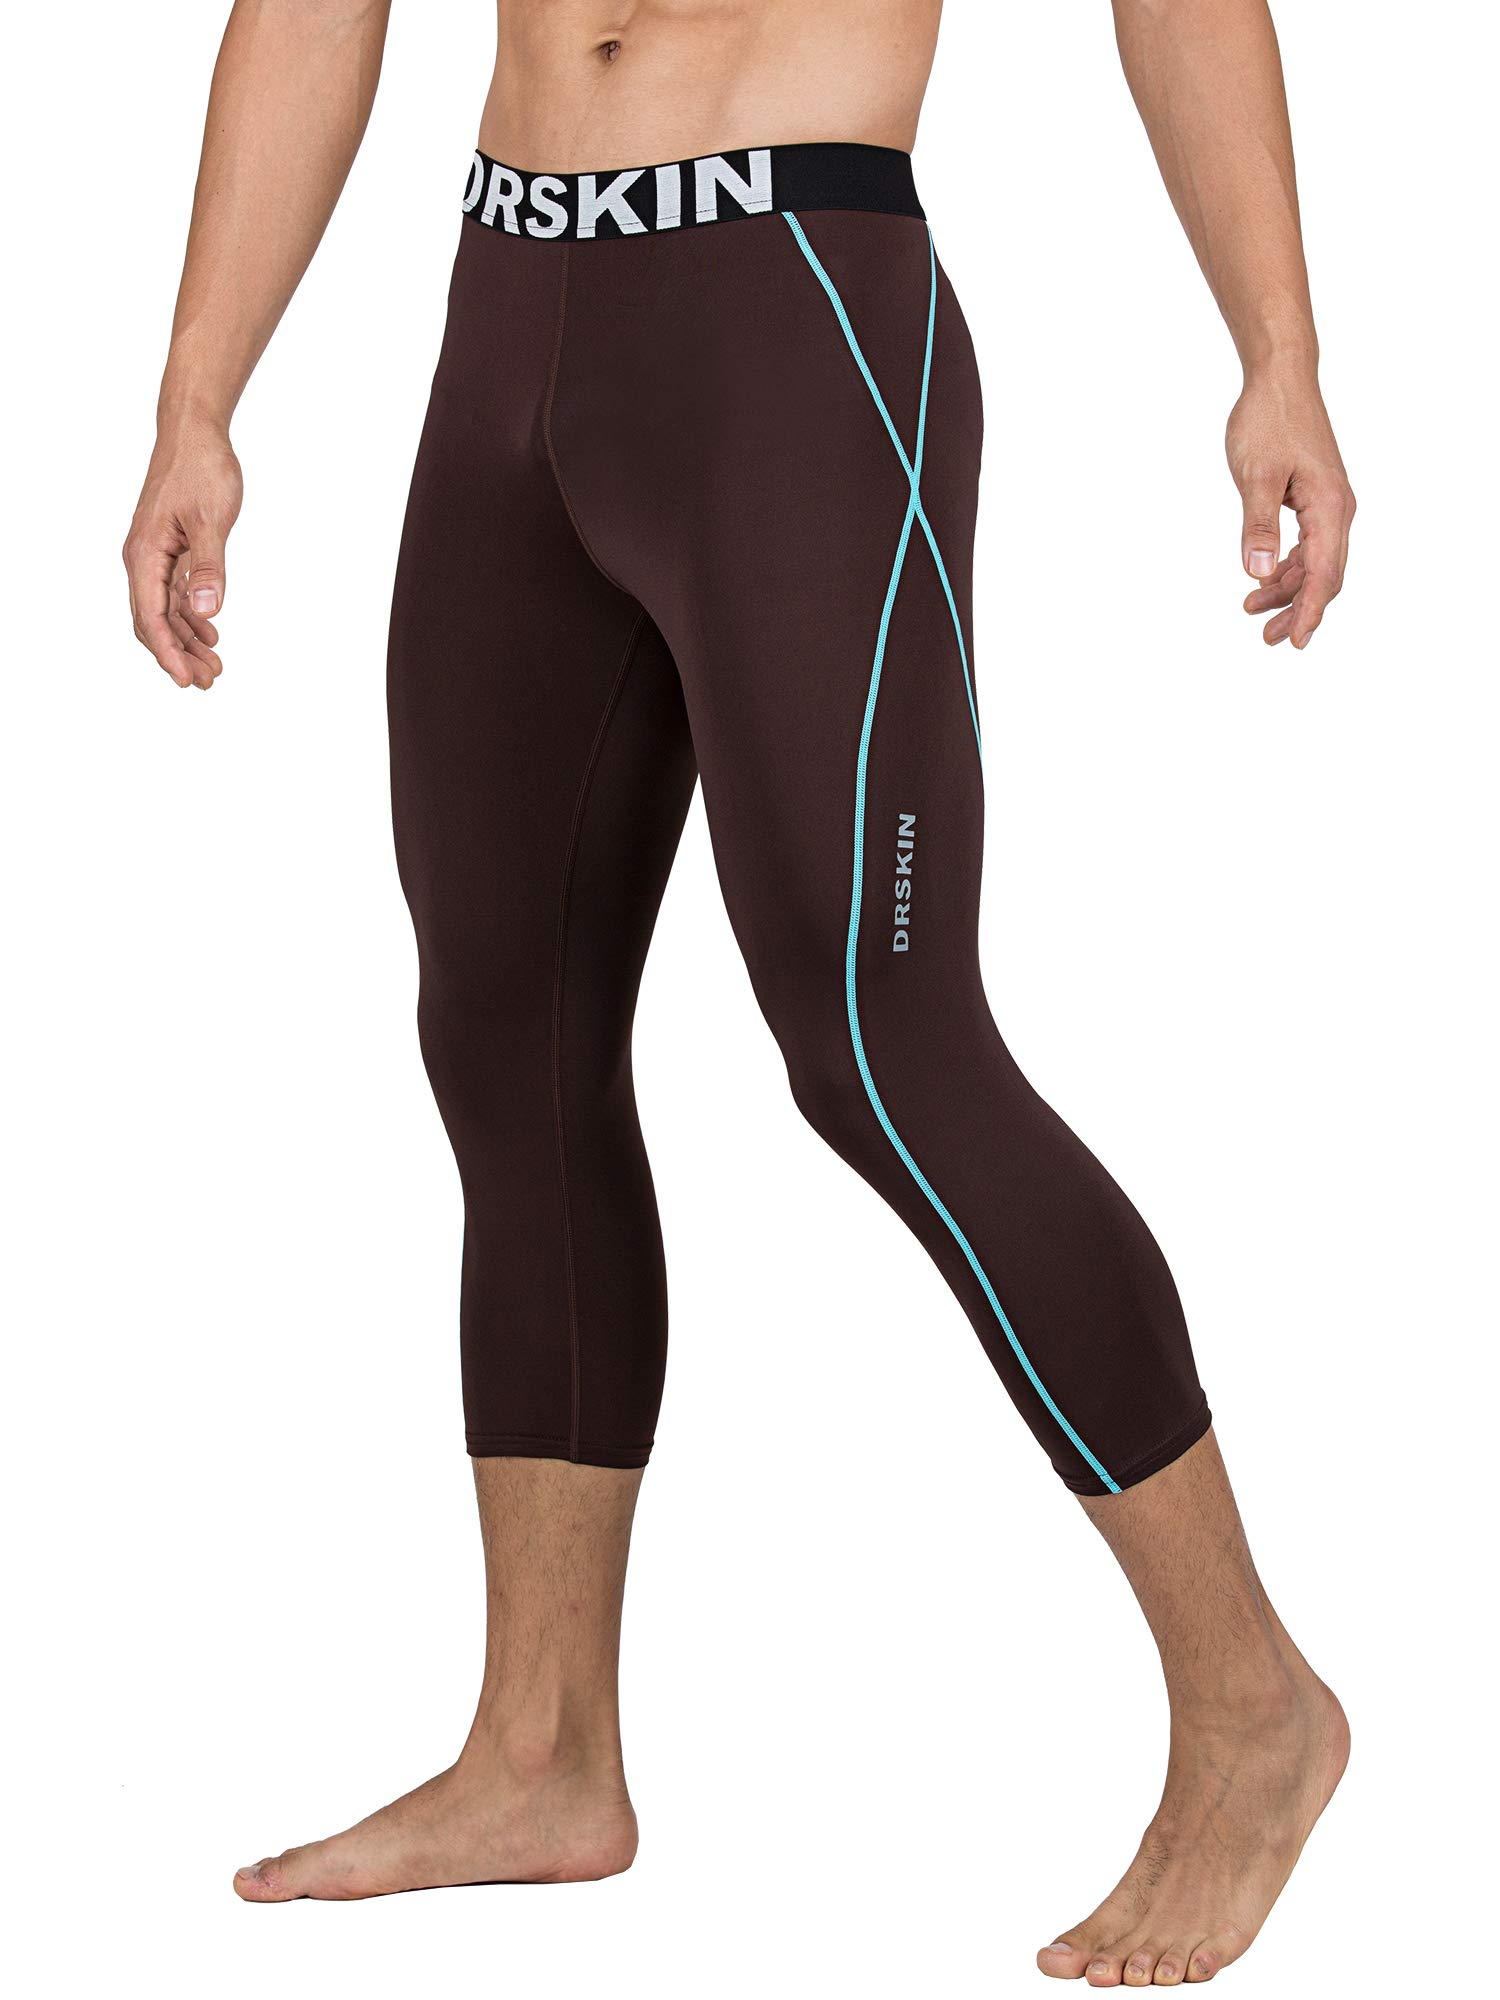 DRSKIN] Tight 3/4 Compression Pants Base Layer Running Pants Men (2XL, BR-MT816) by DRSKIN